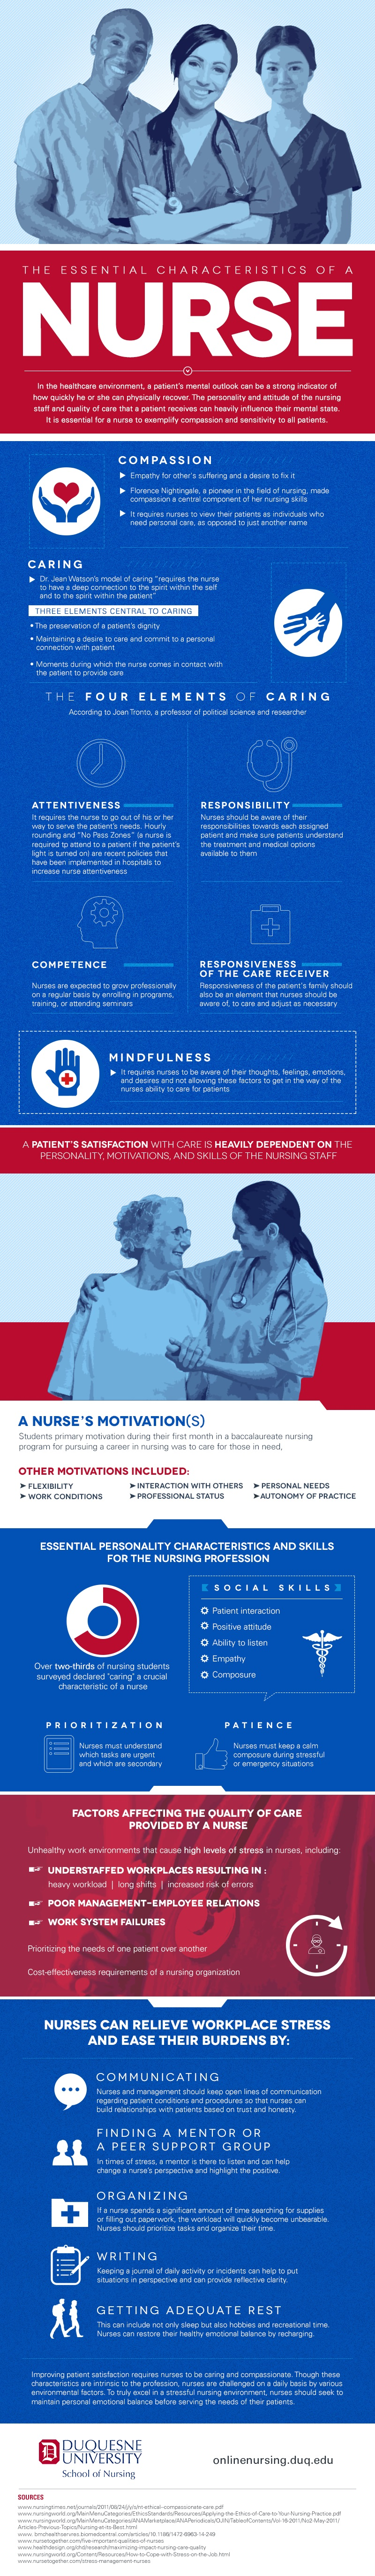 characteristics of nursing infographic